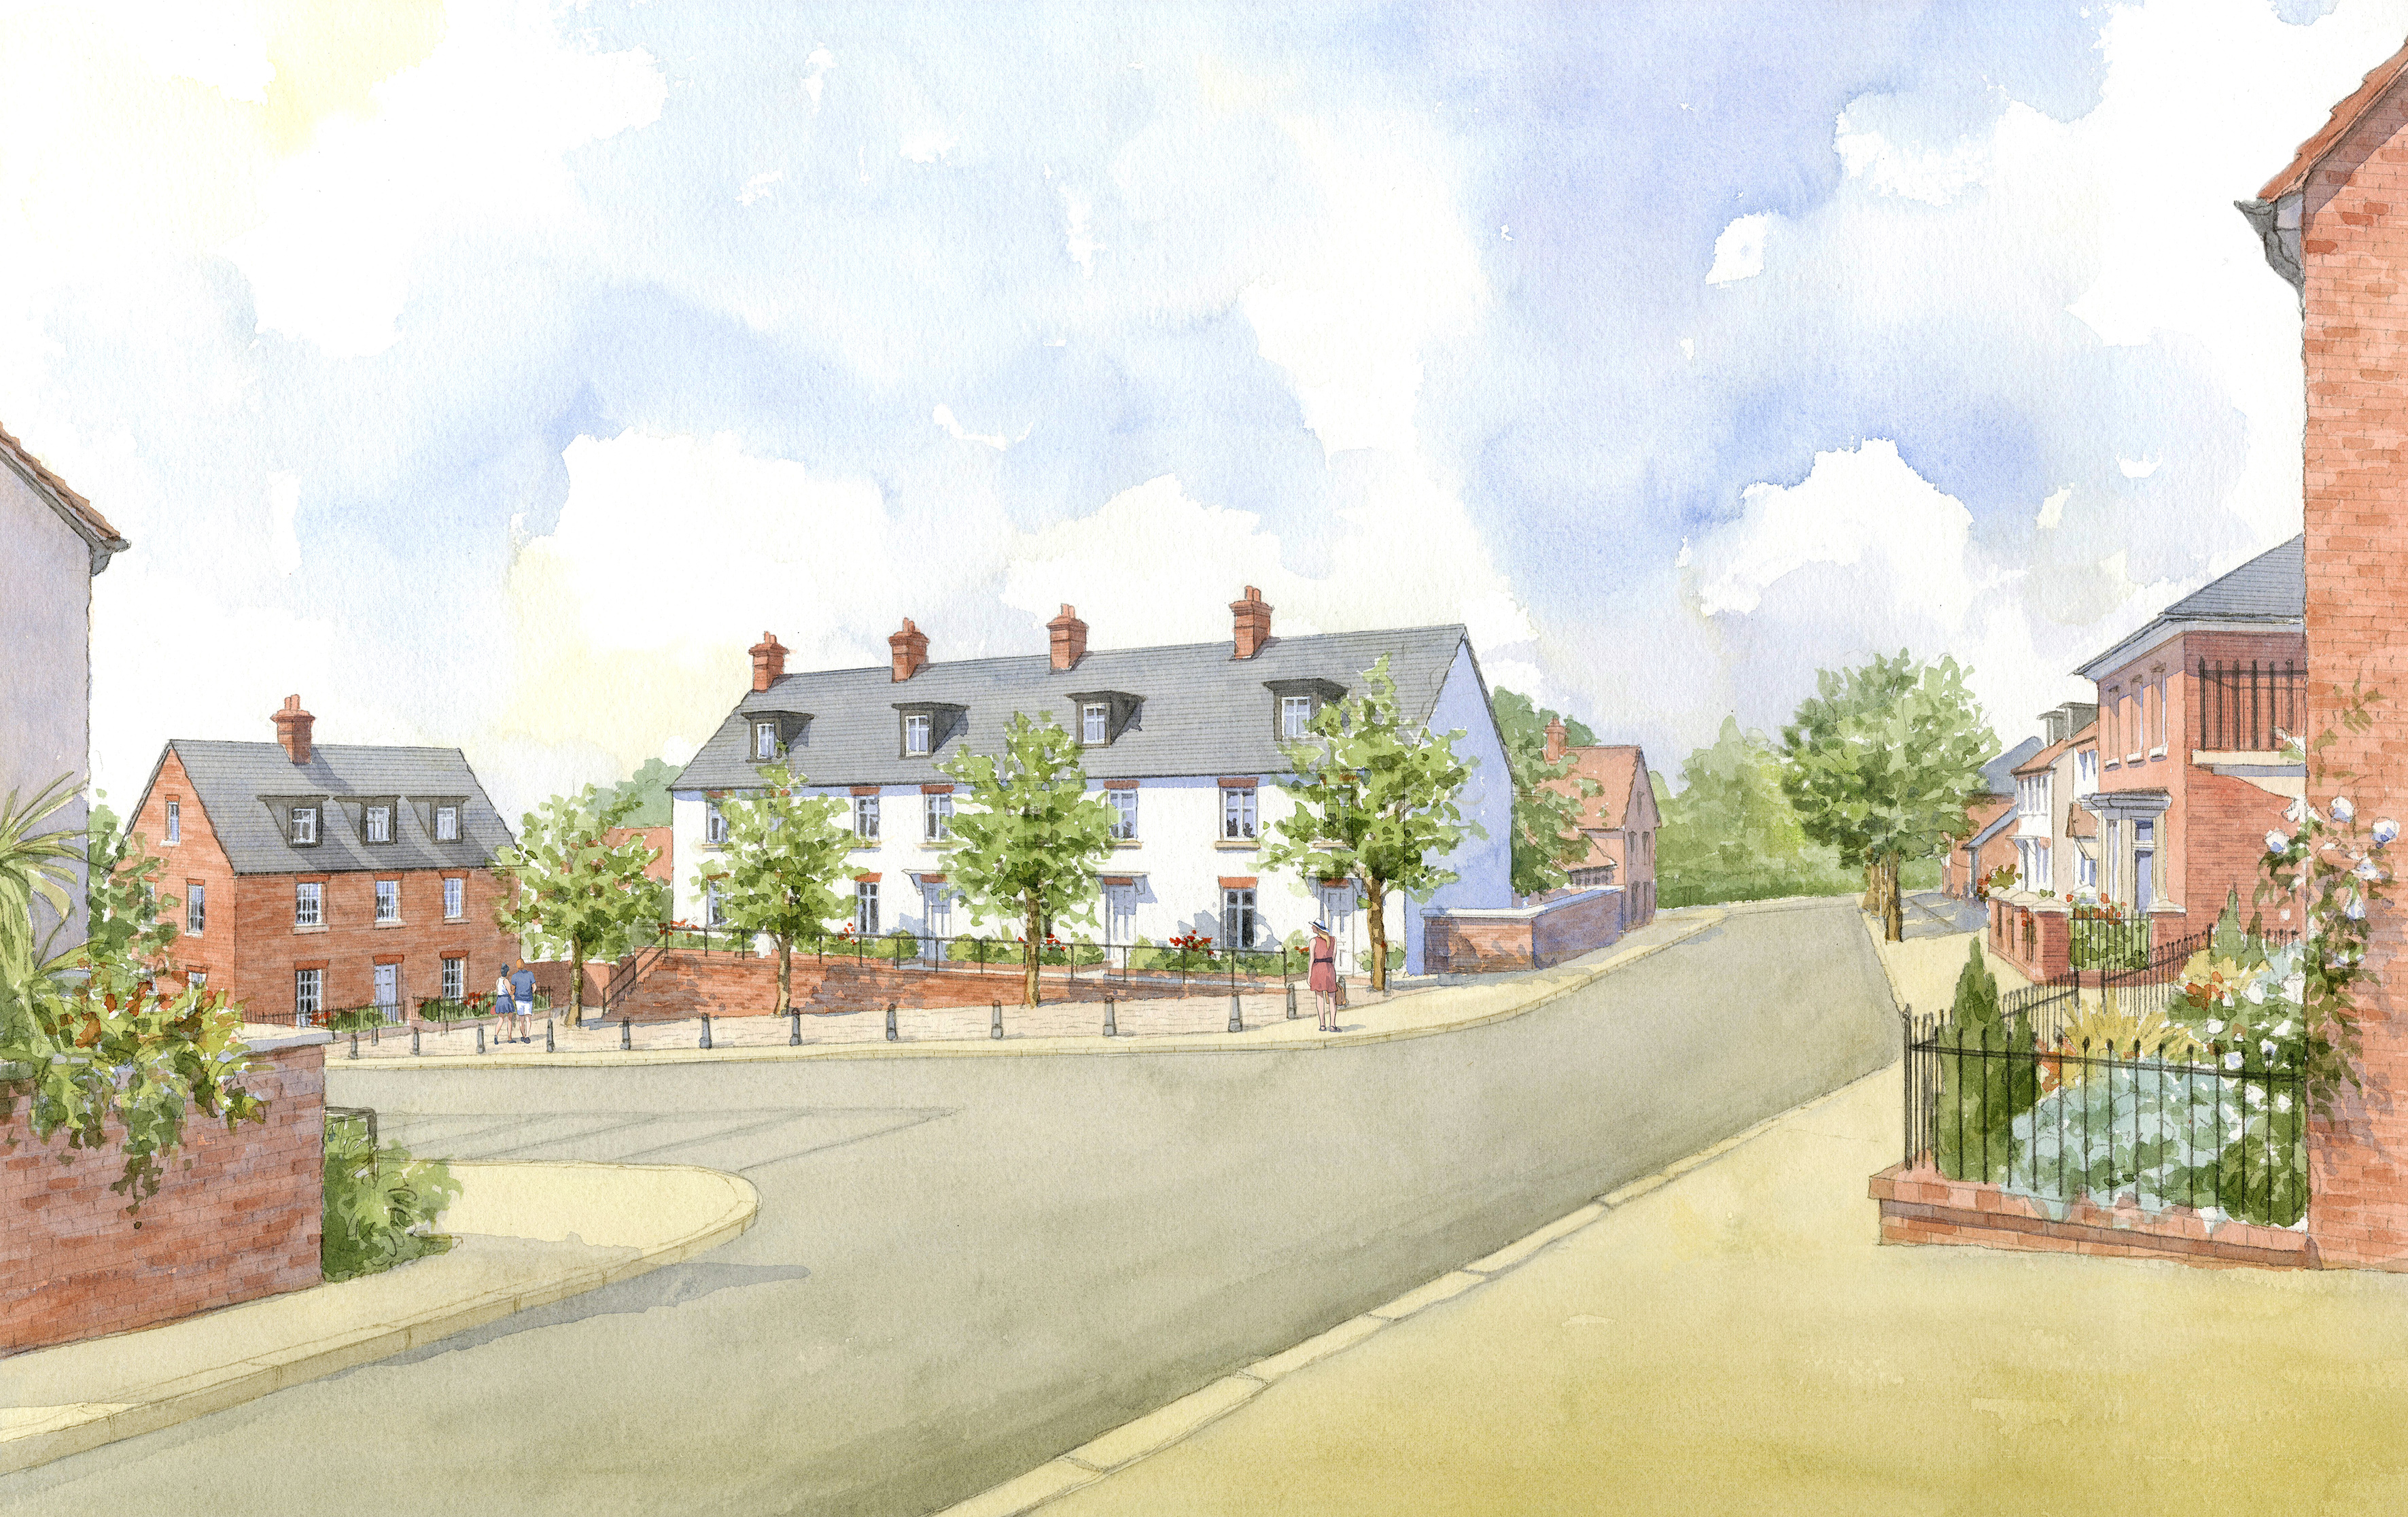 Buckinghamshire masterplan - traditional housing around a square